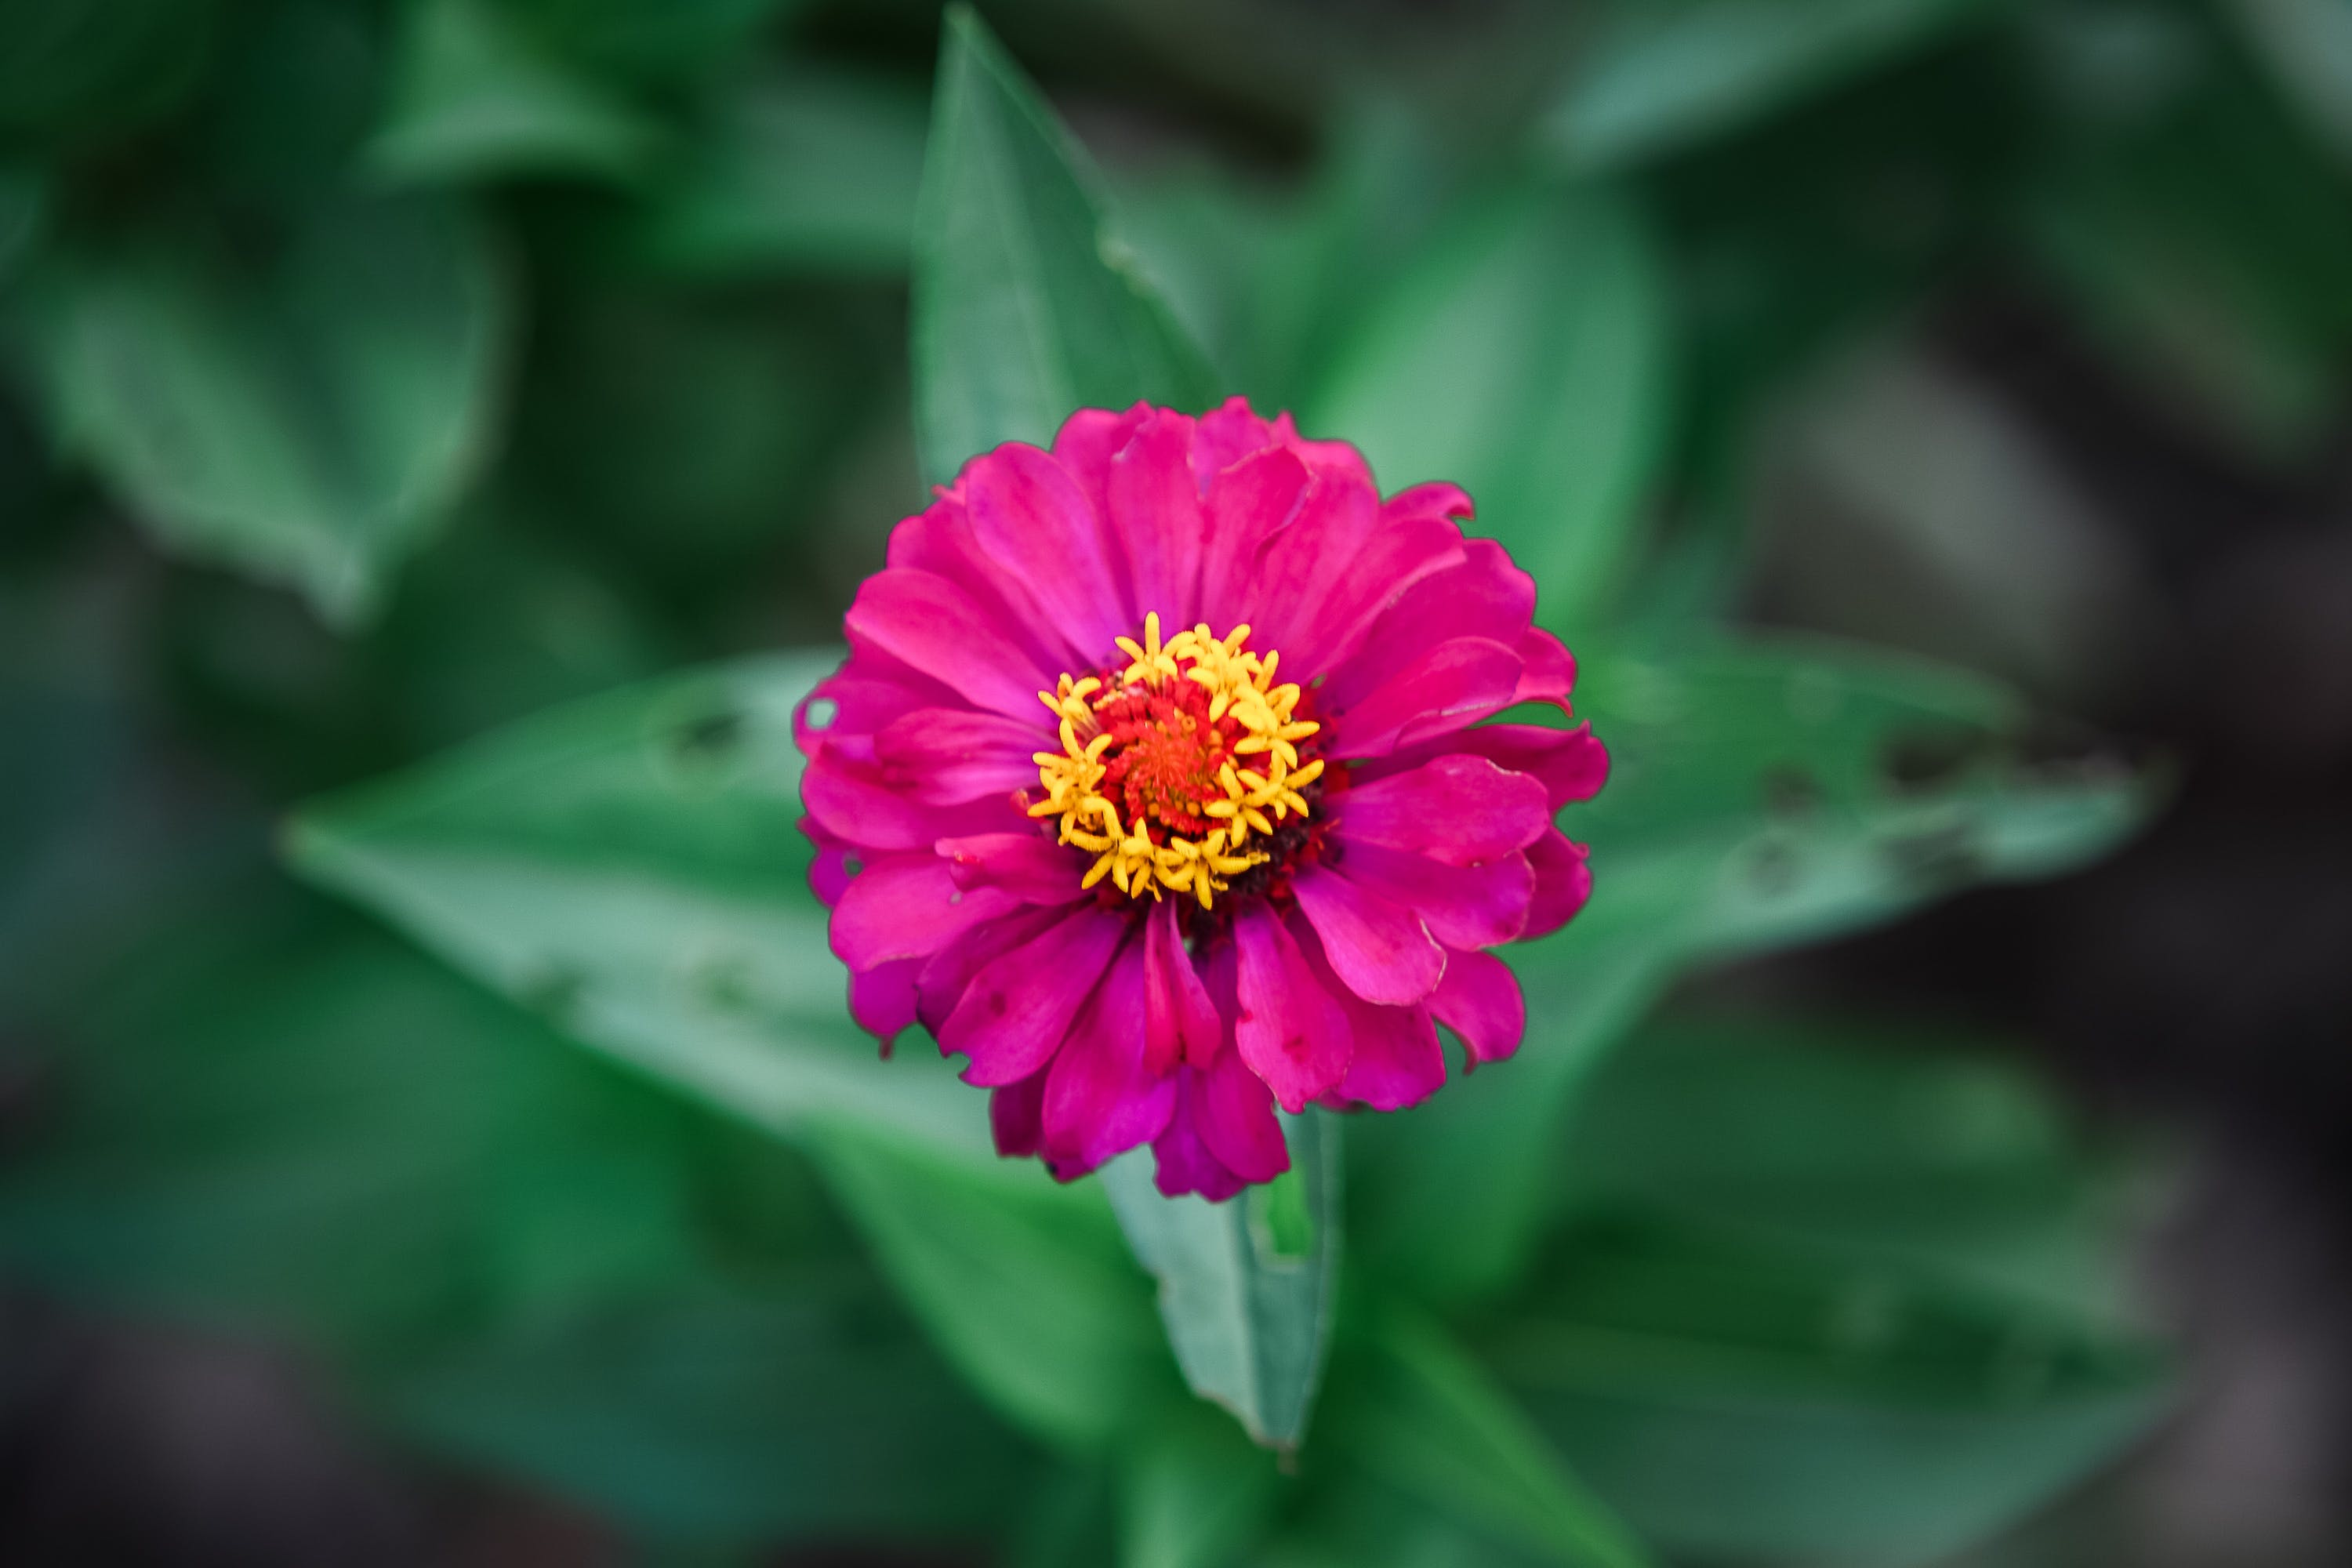 Selective Focus Photography of Pink Petaled Floer